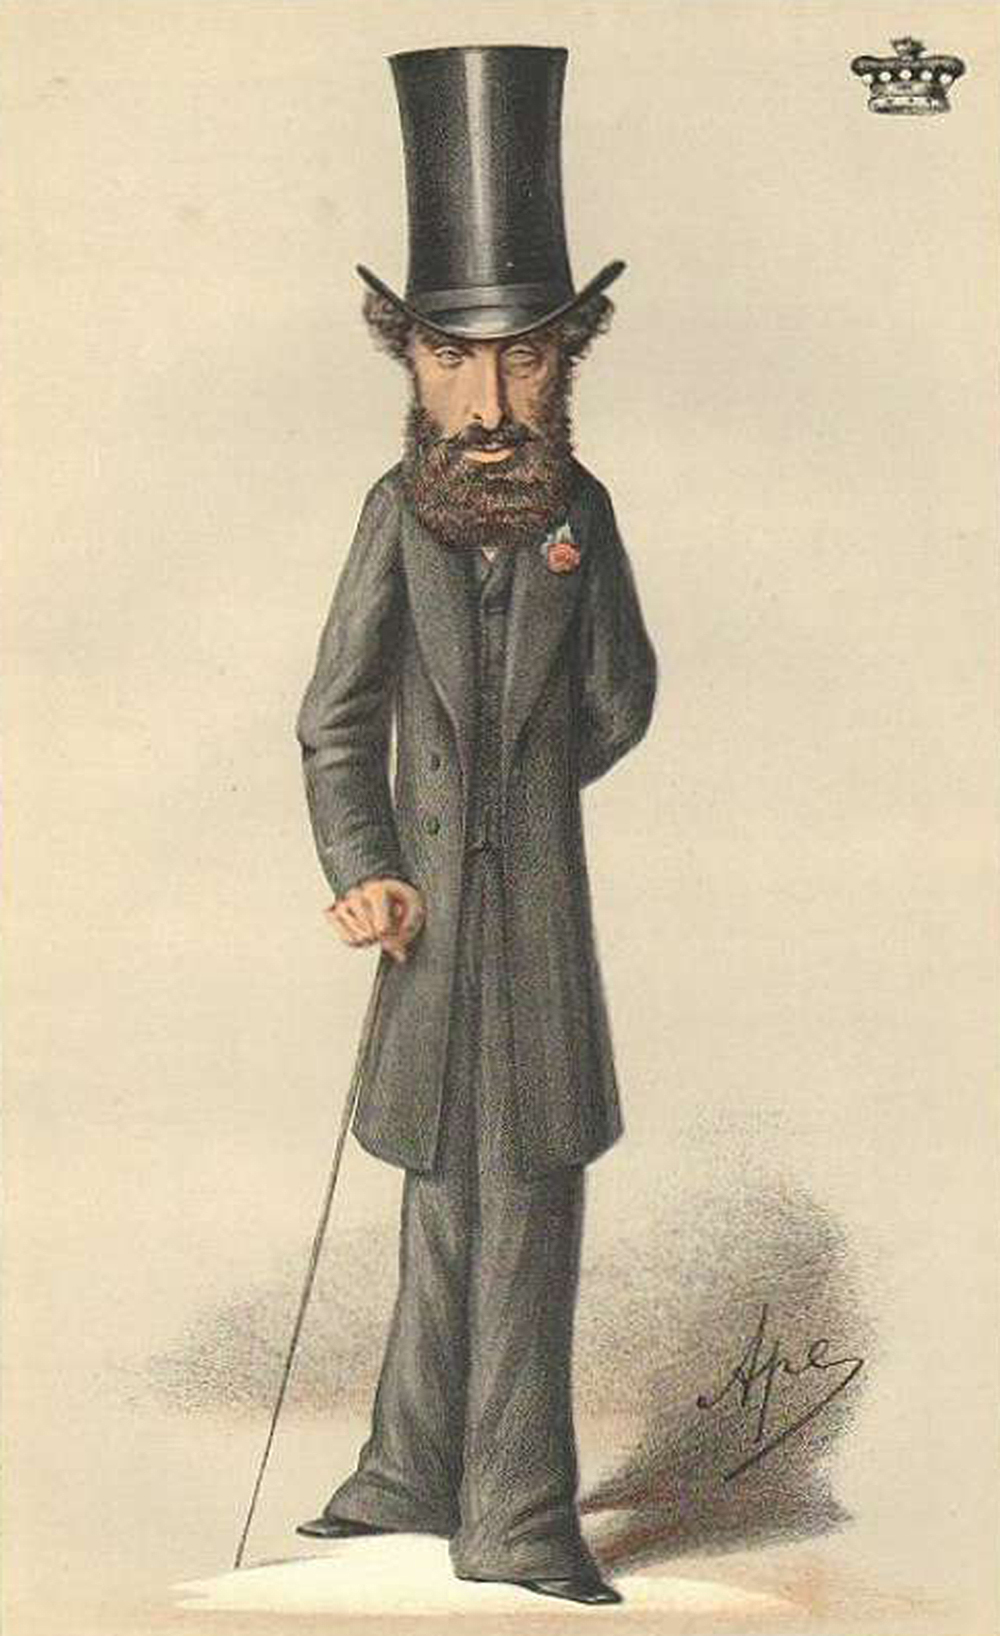 """Caricature of Edward Bulwer-Lytton from """"Vanity Fair,"""" by Carlo Pellegrini, 1870. Wikimedia Commons."""